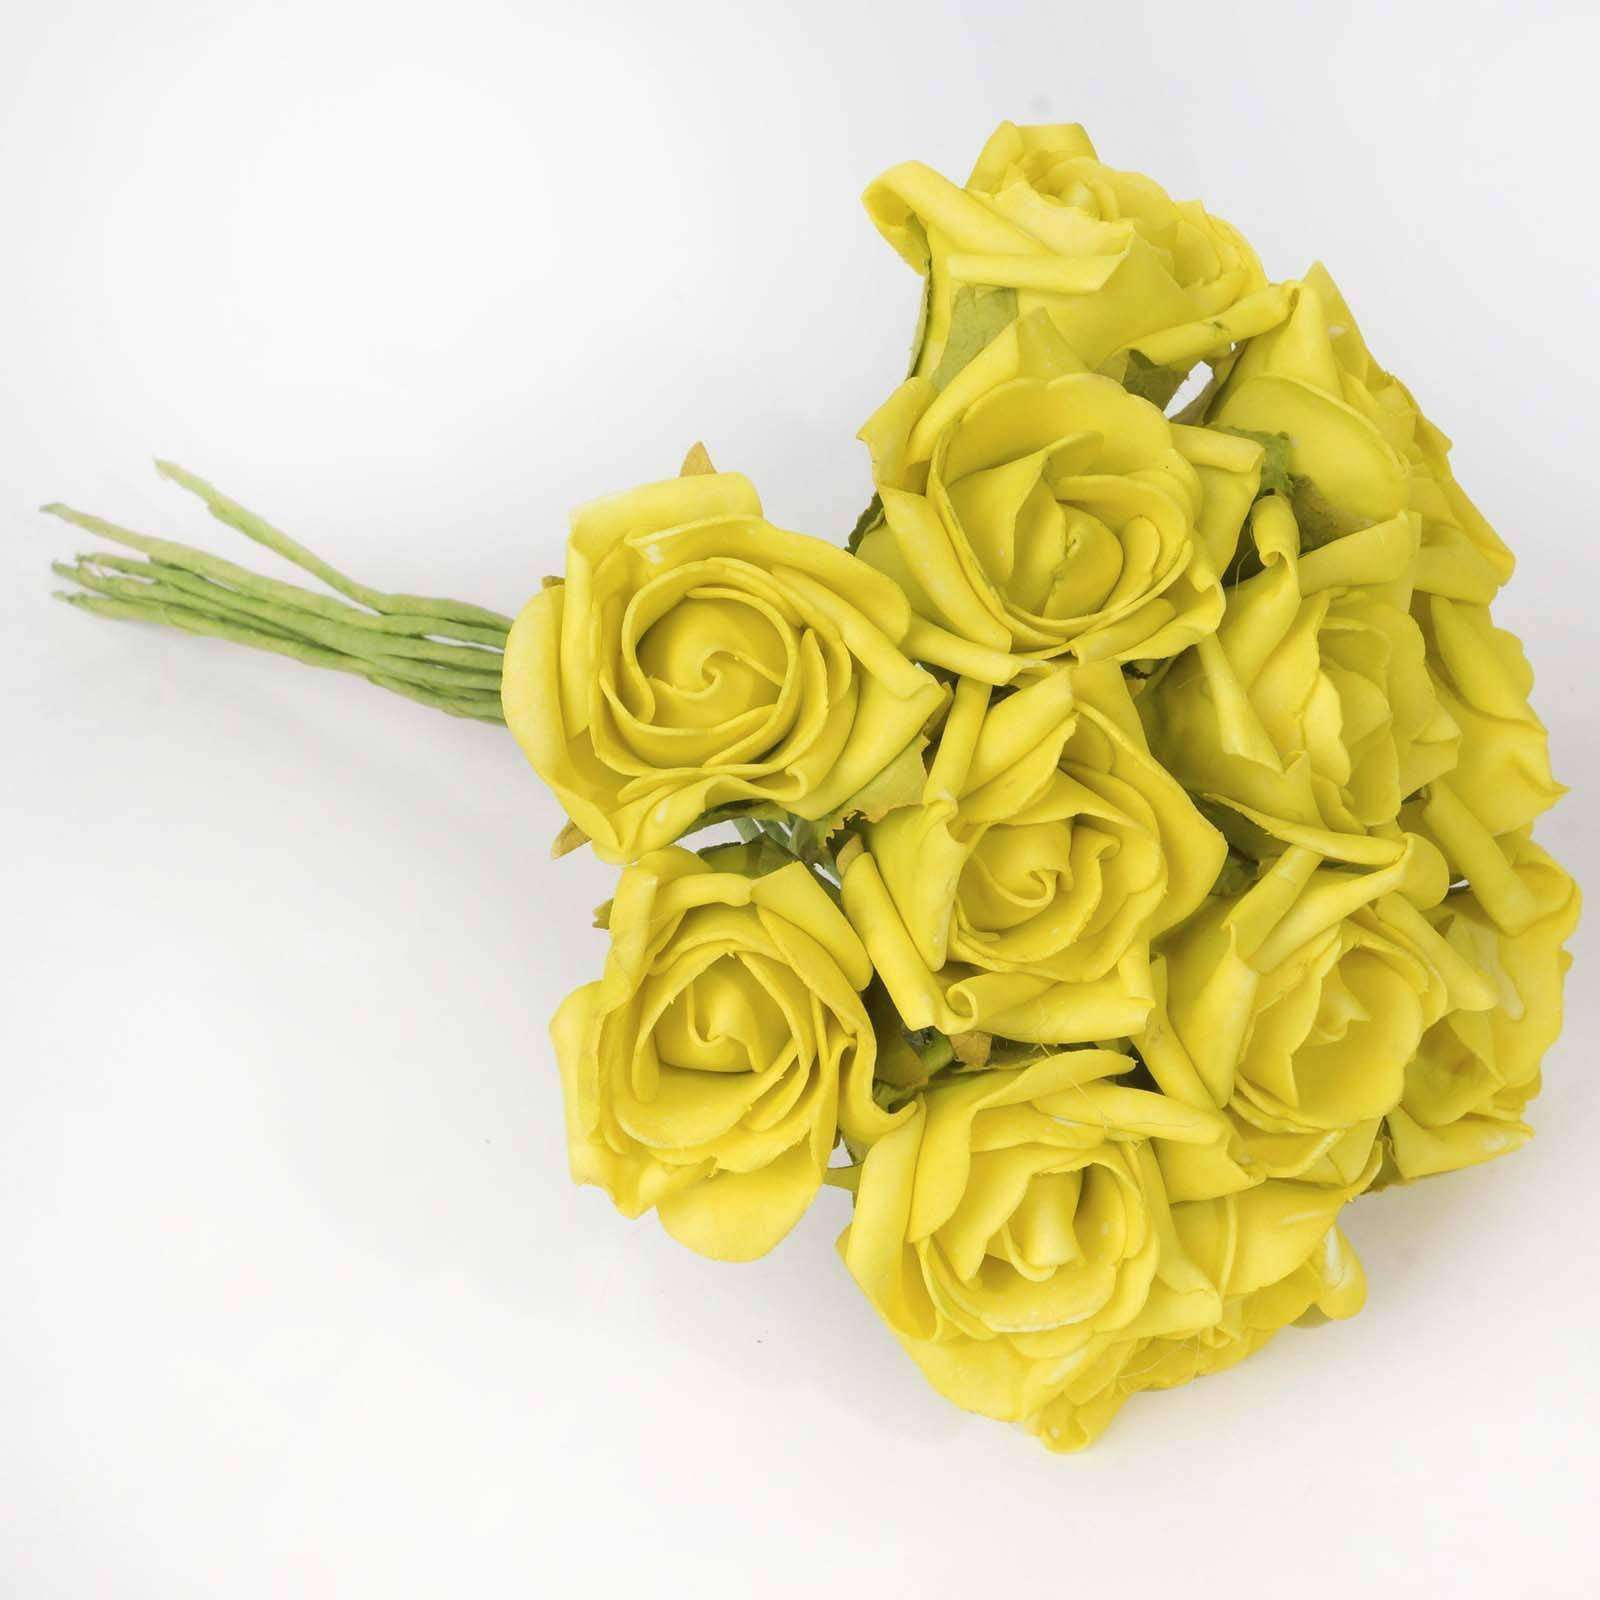 6 Pack 72 Pcs Yellow Artificial Foam Rose Flowers Bridal Bouquet